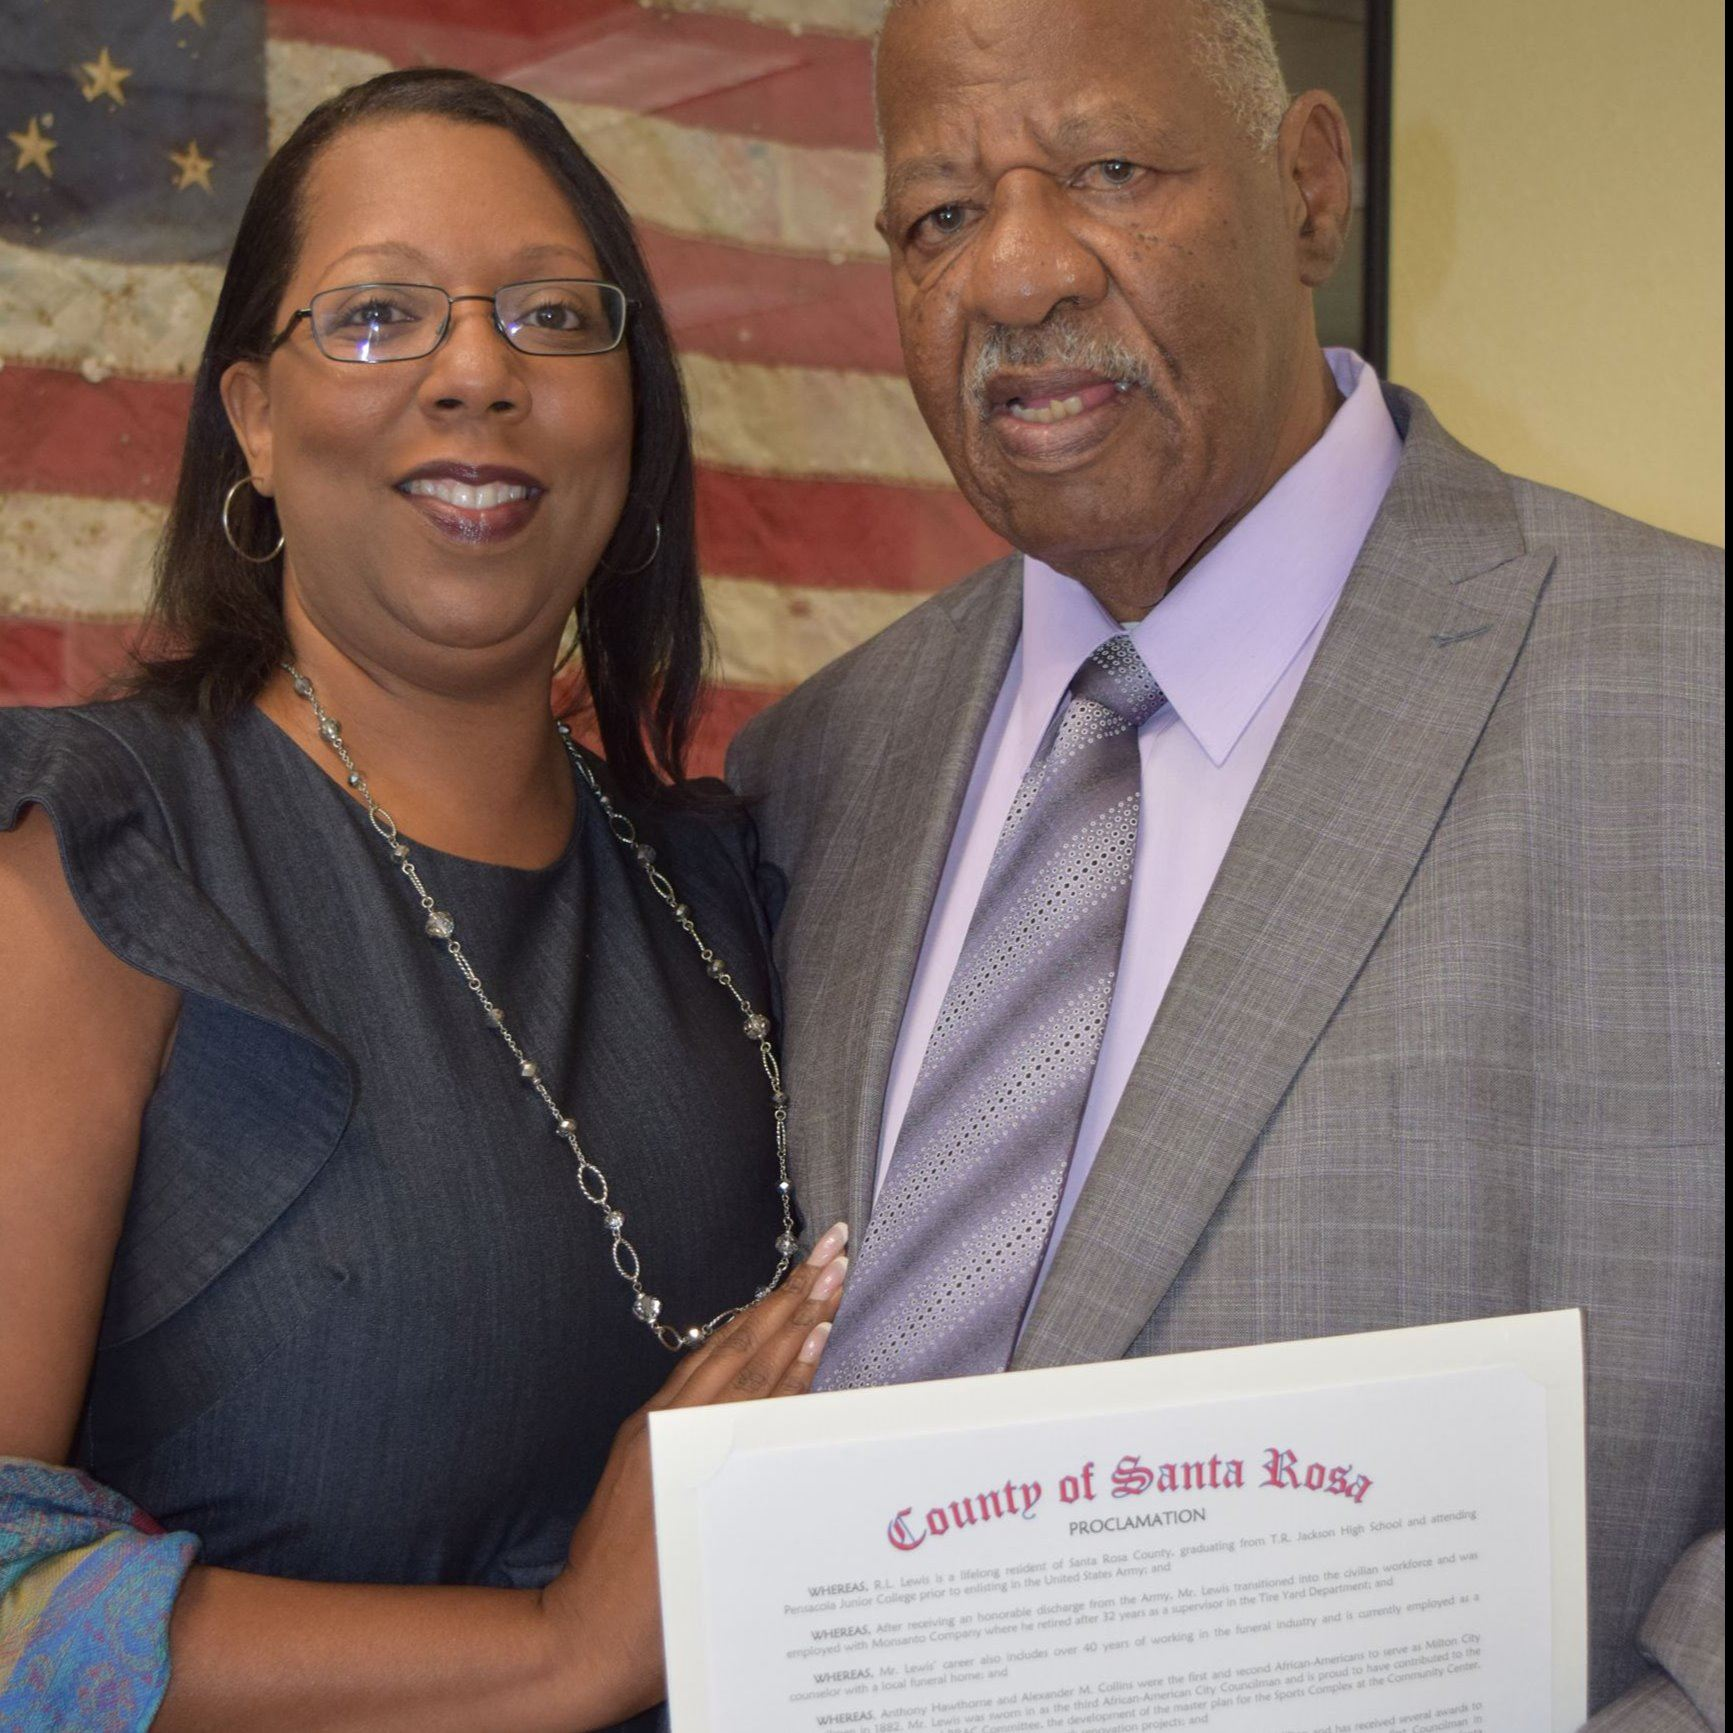 R.L. Lewis and daughter Cheryl Shakur standing together with a proclamation